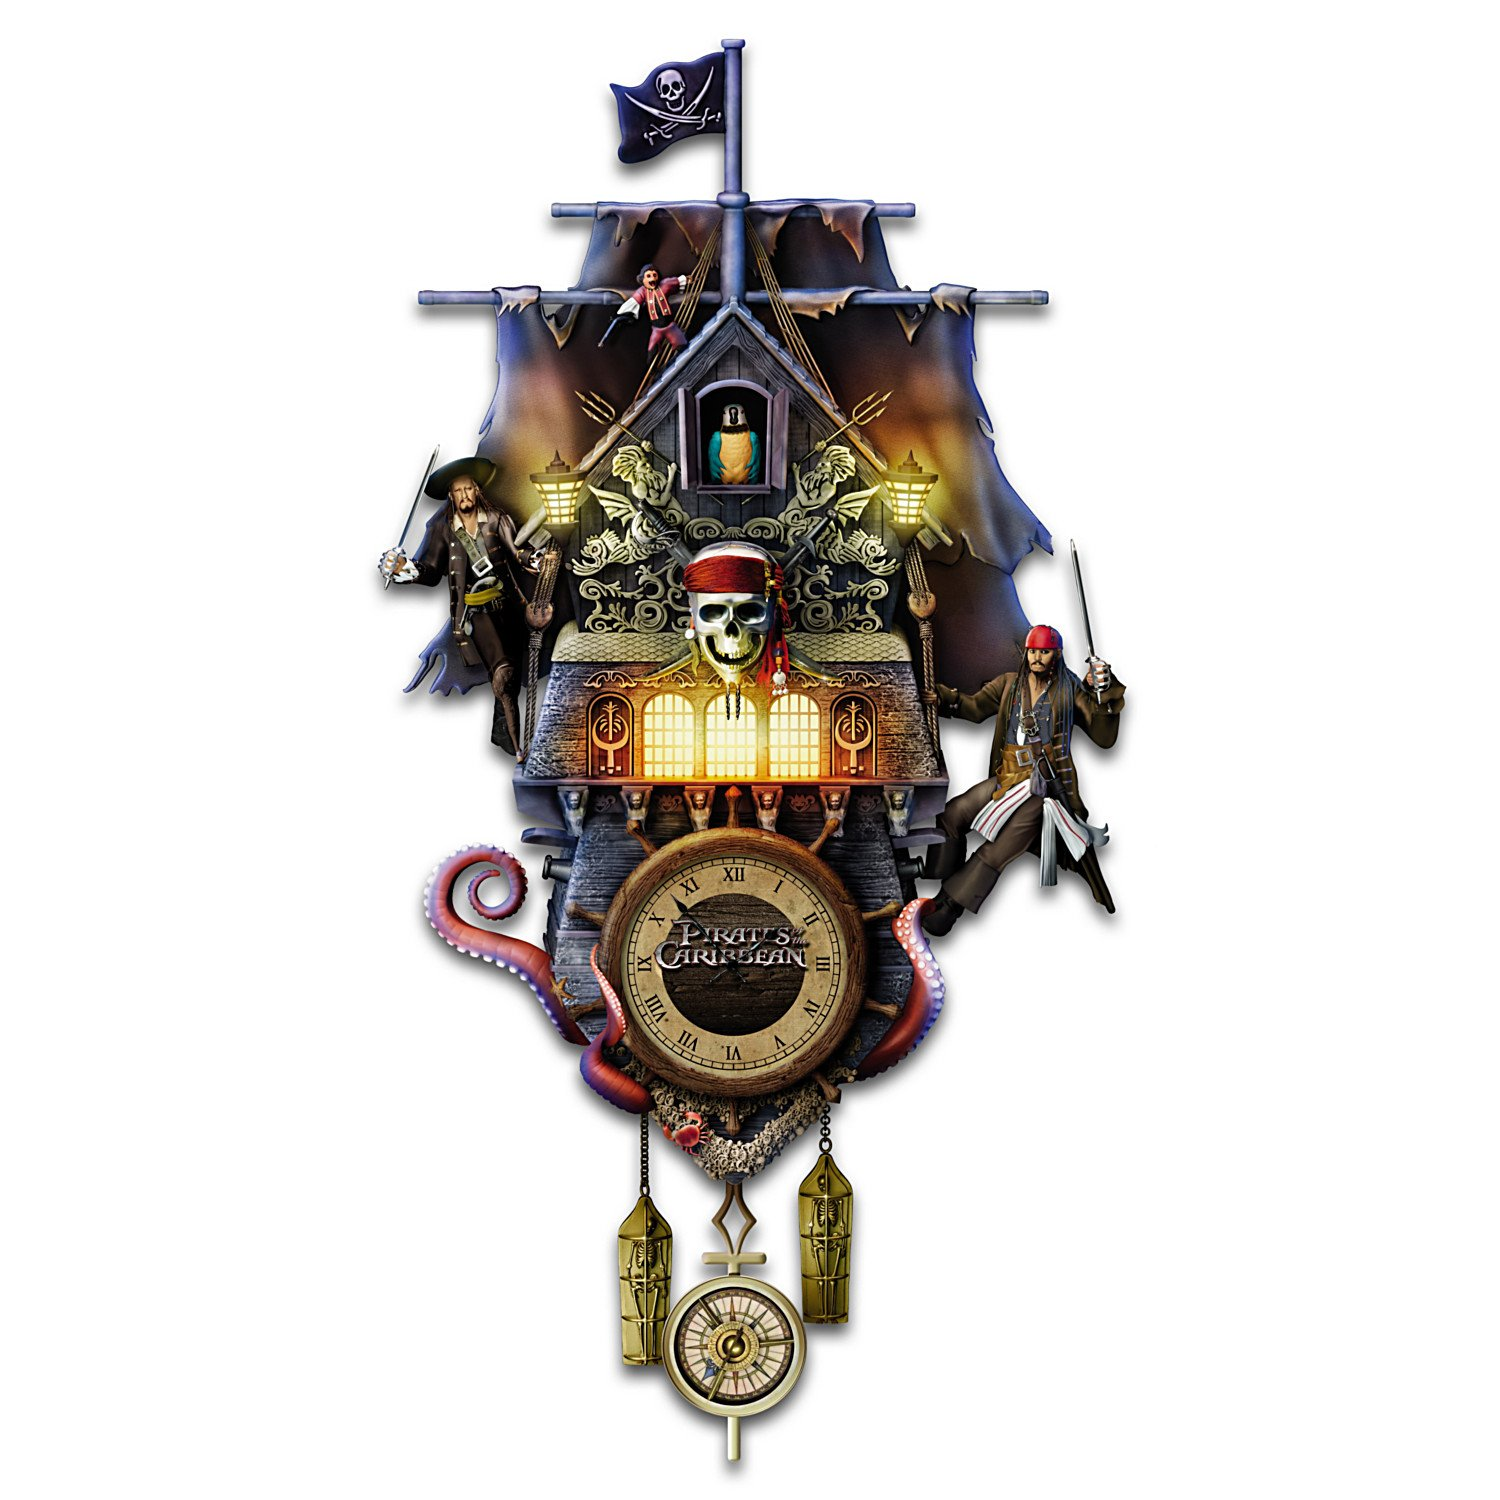 Collectible Disney Pirates of the Caribbean Illuminated Black Pearl Cuckoo Clock by The Bradford Exchange 01-25863-001